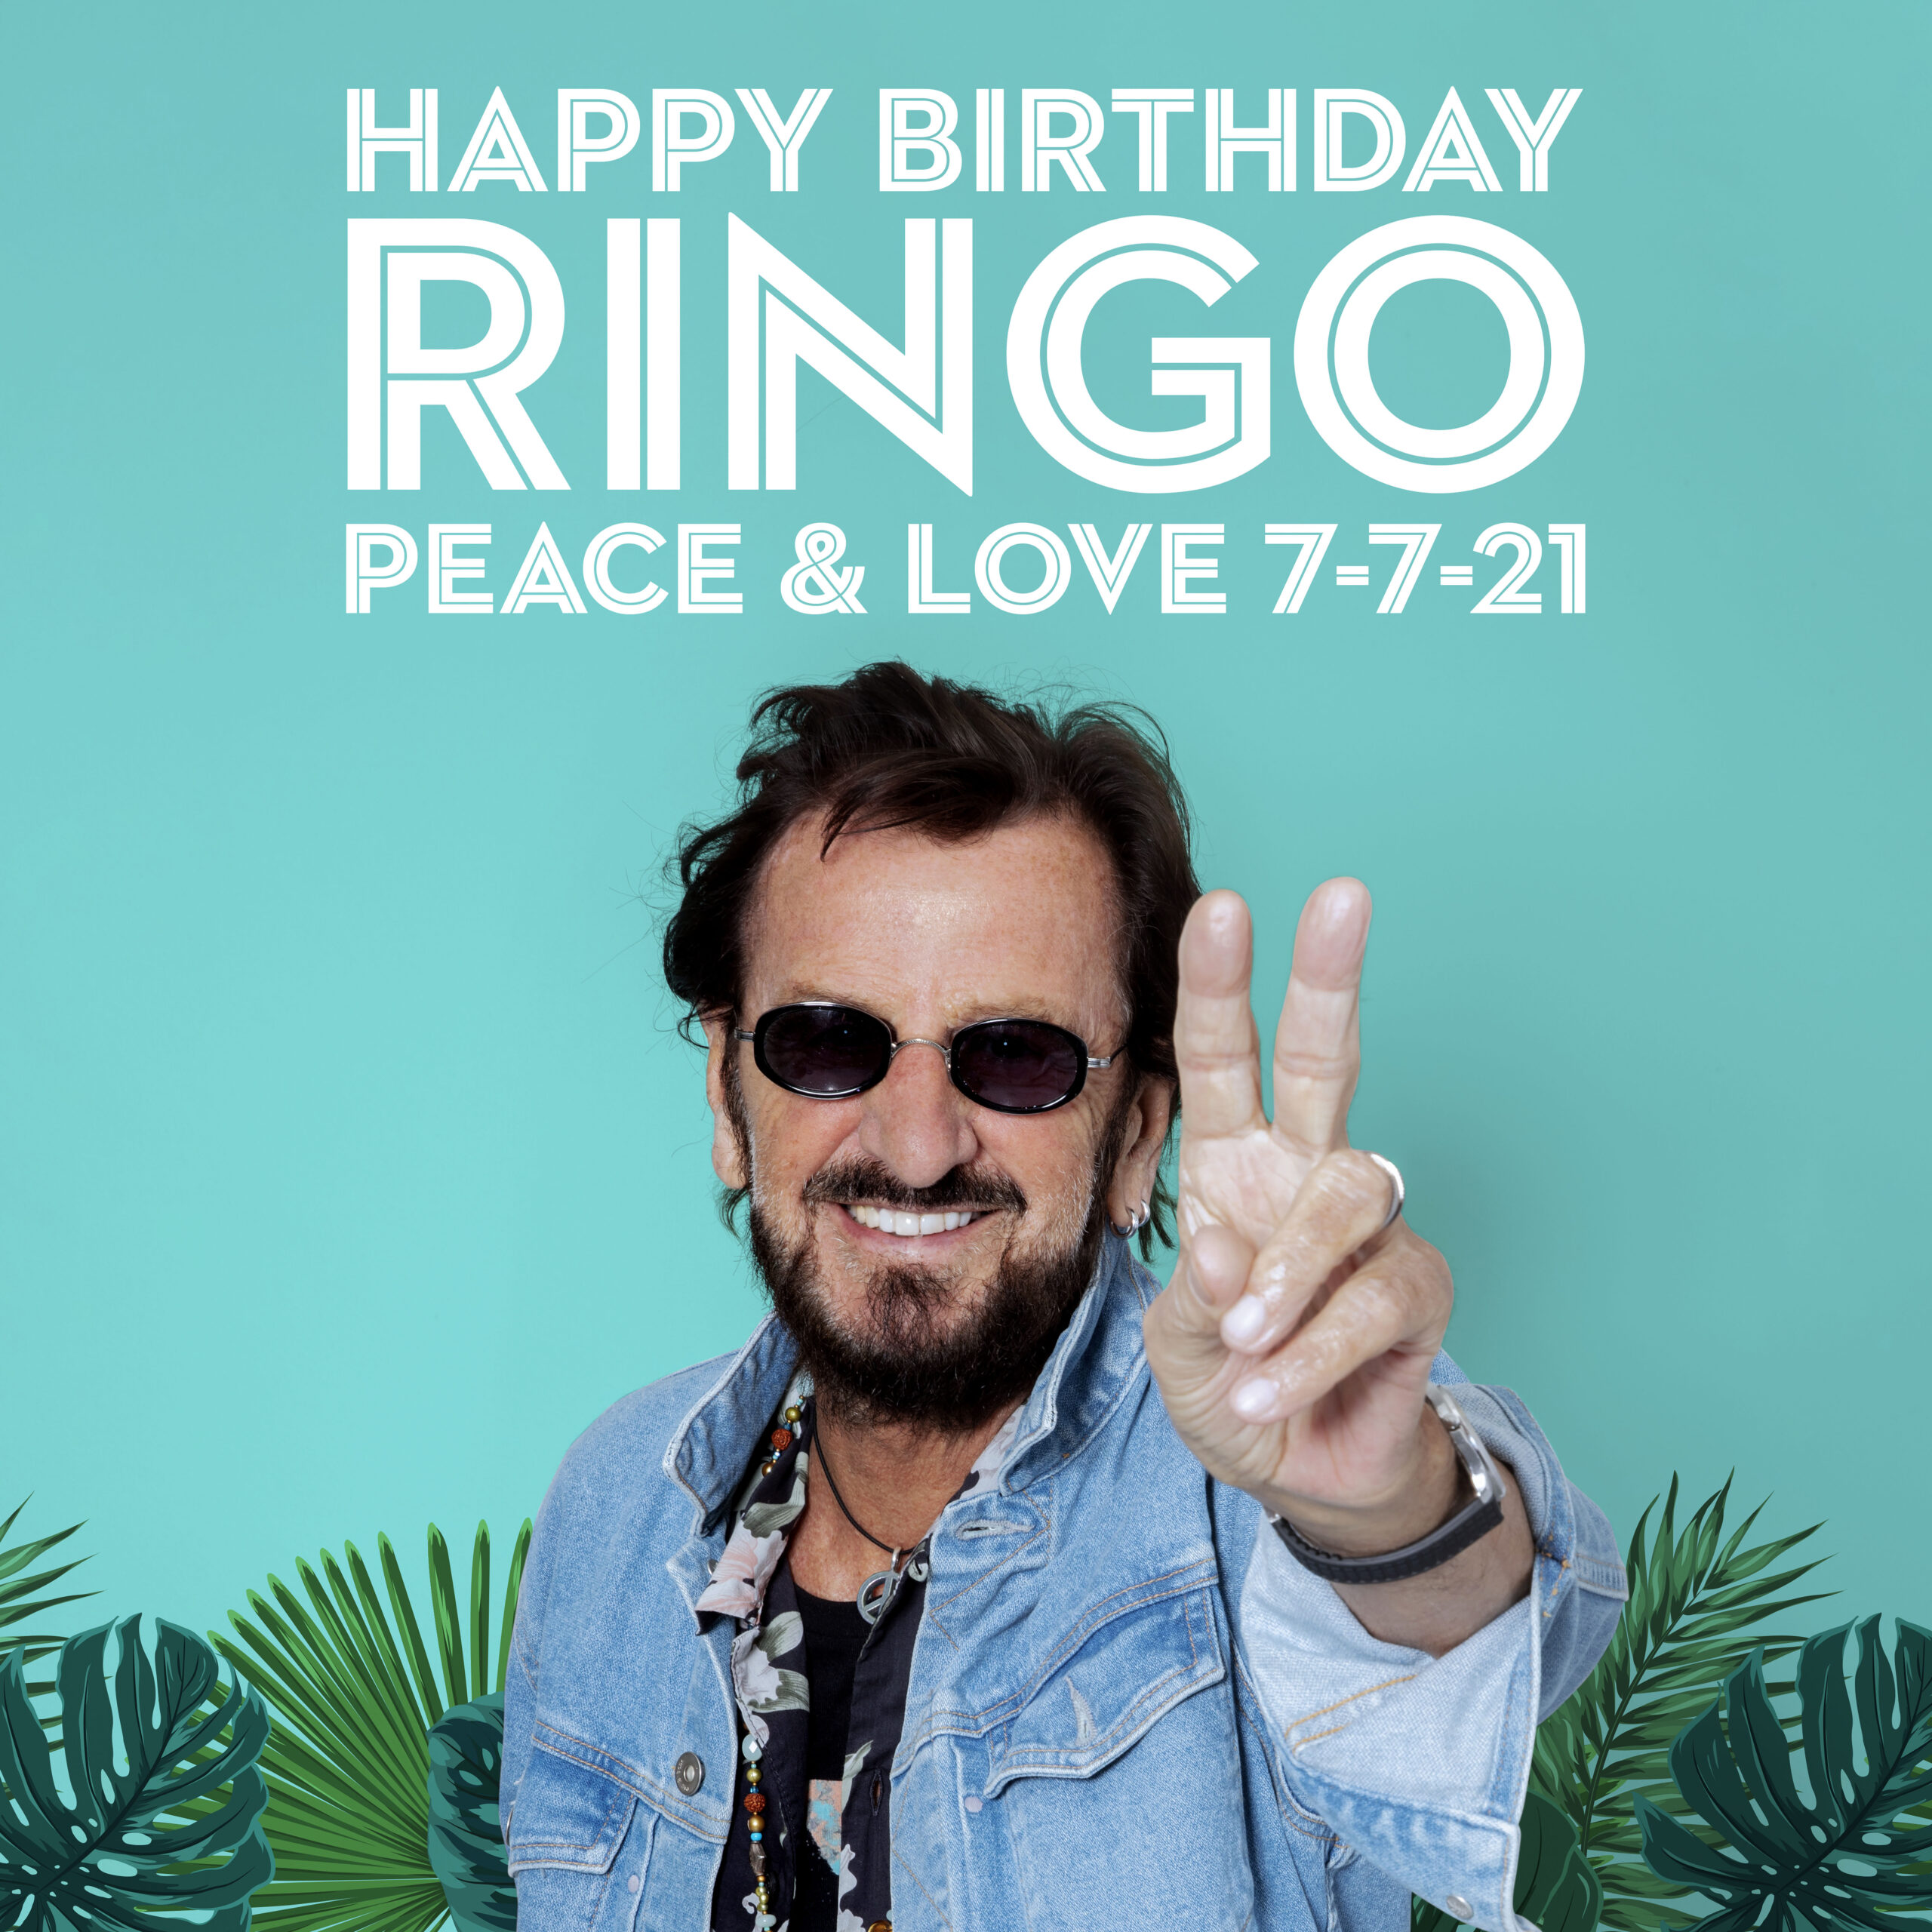 Ringo Starr Peace and Love on his birthday